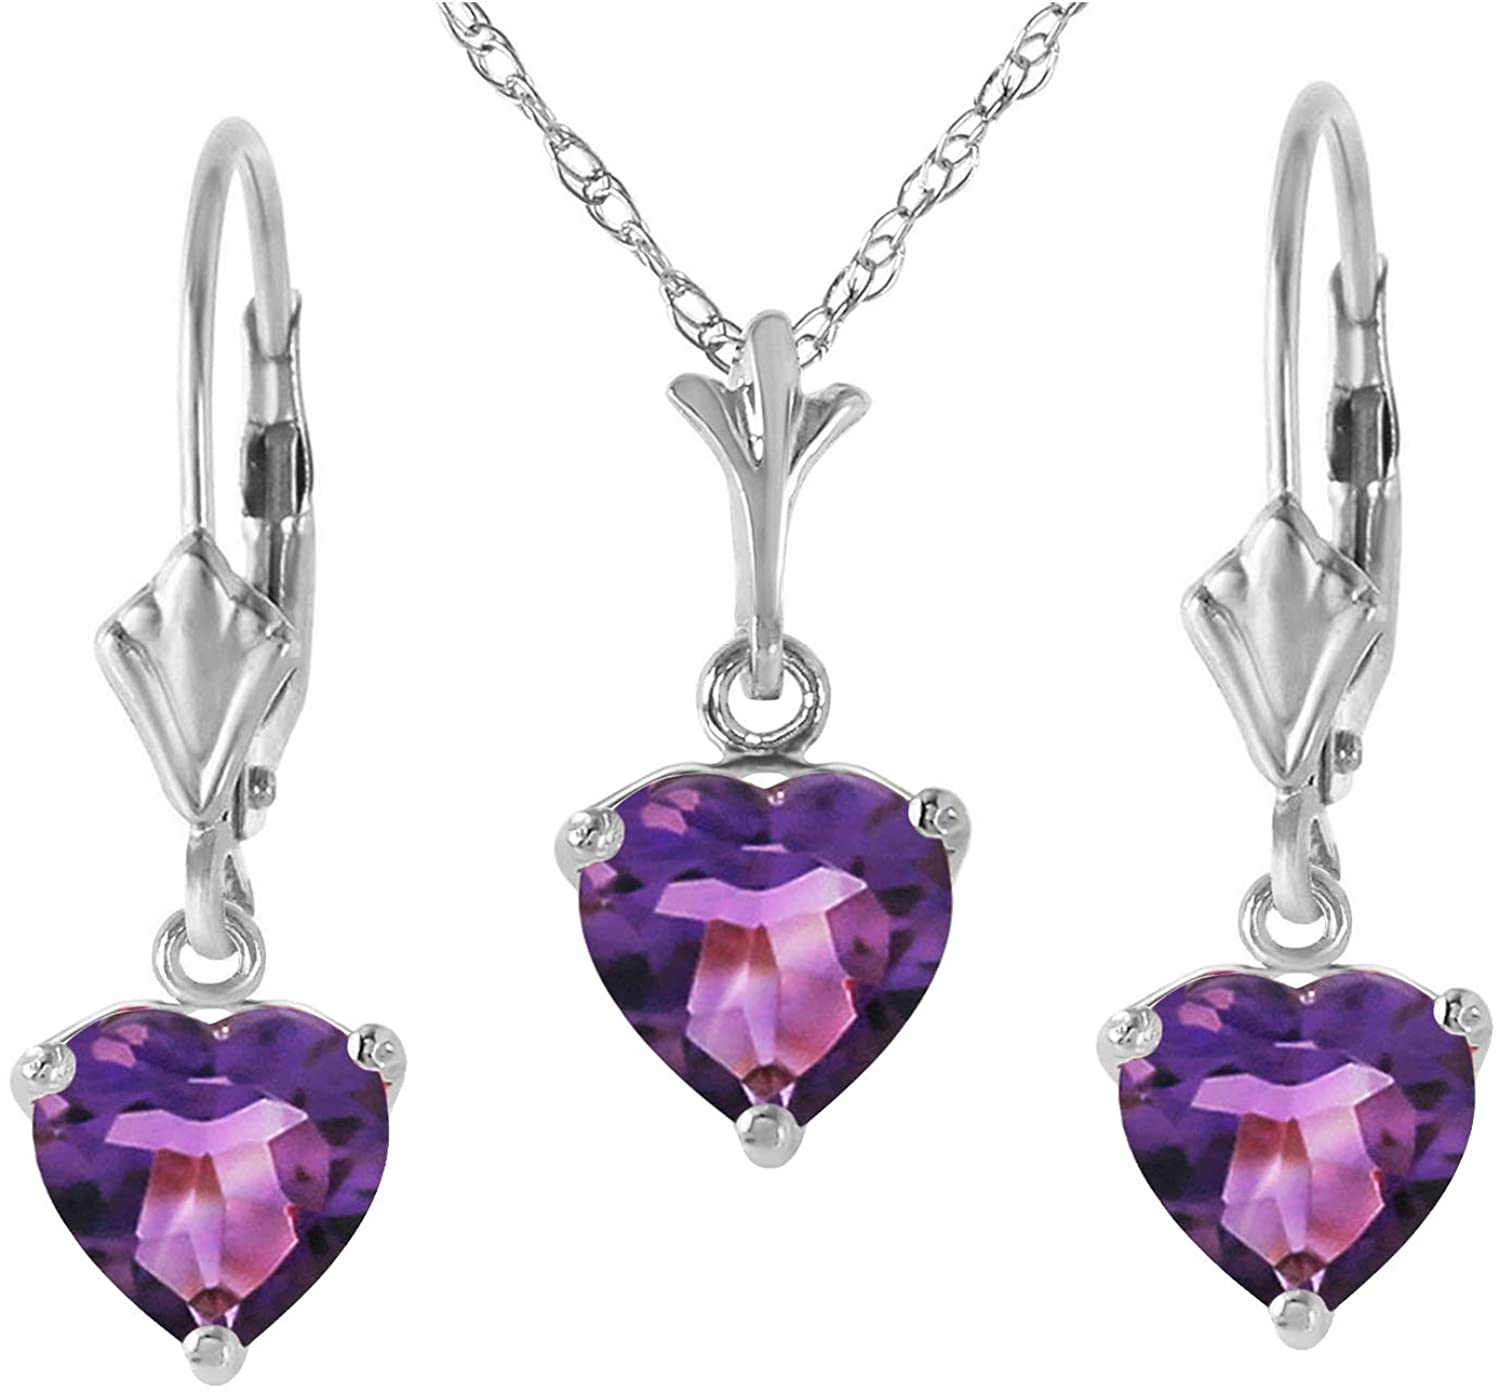 Galaxy Gold 14k White Gold Jewelry Set - Necklace and Earrings w/Natural Heart-shaped Purple Amethysts